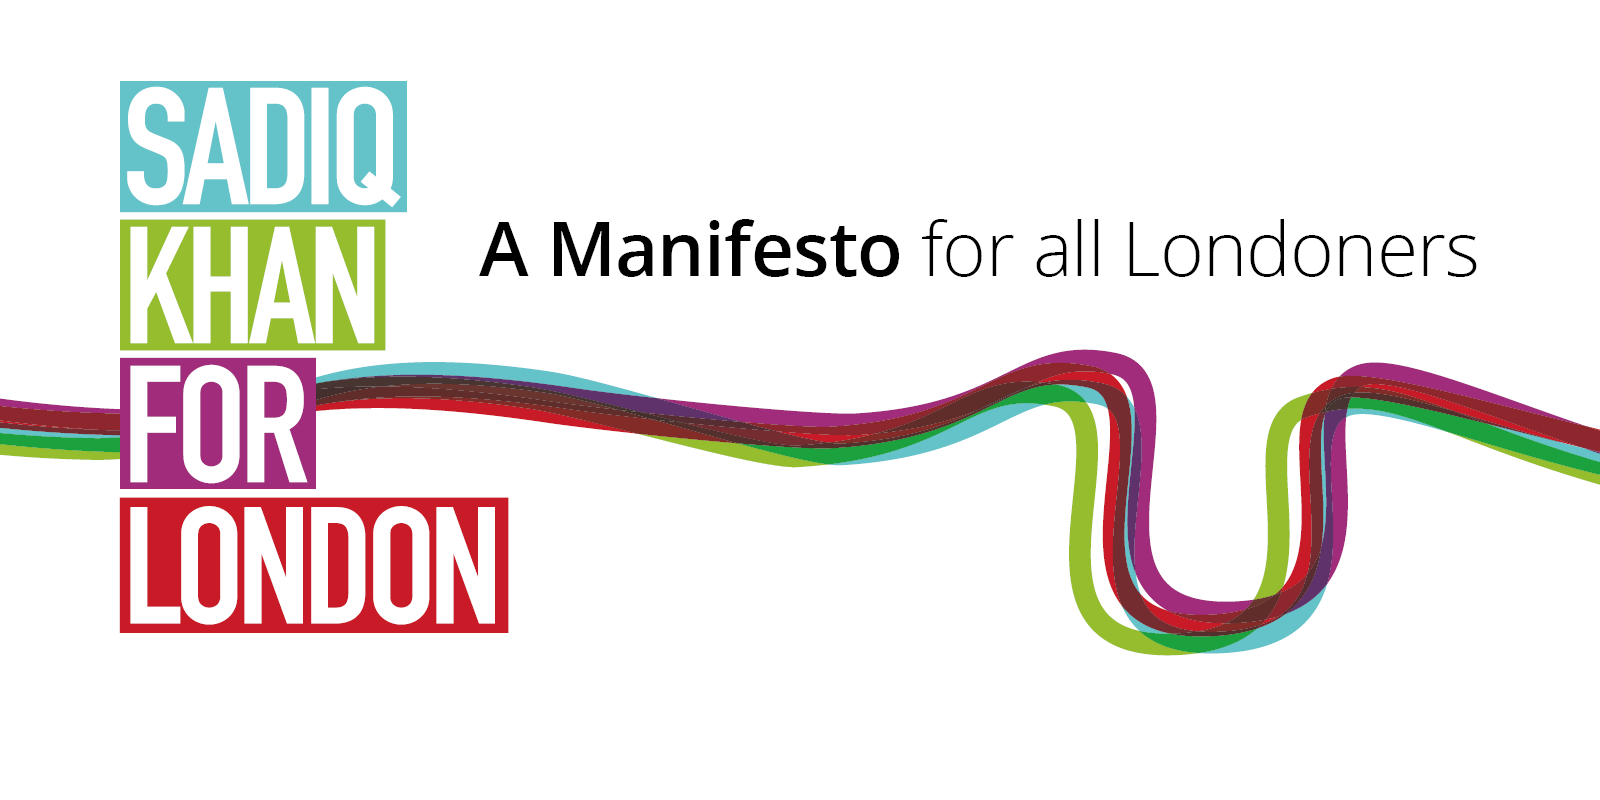 A Manifesto for all Londoners